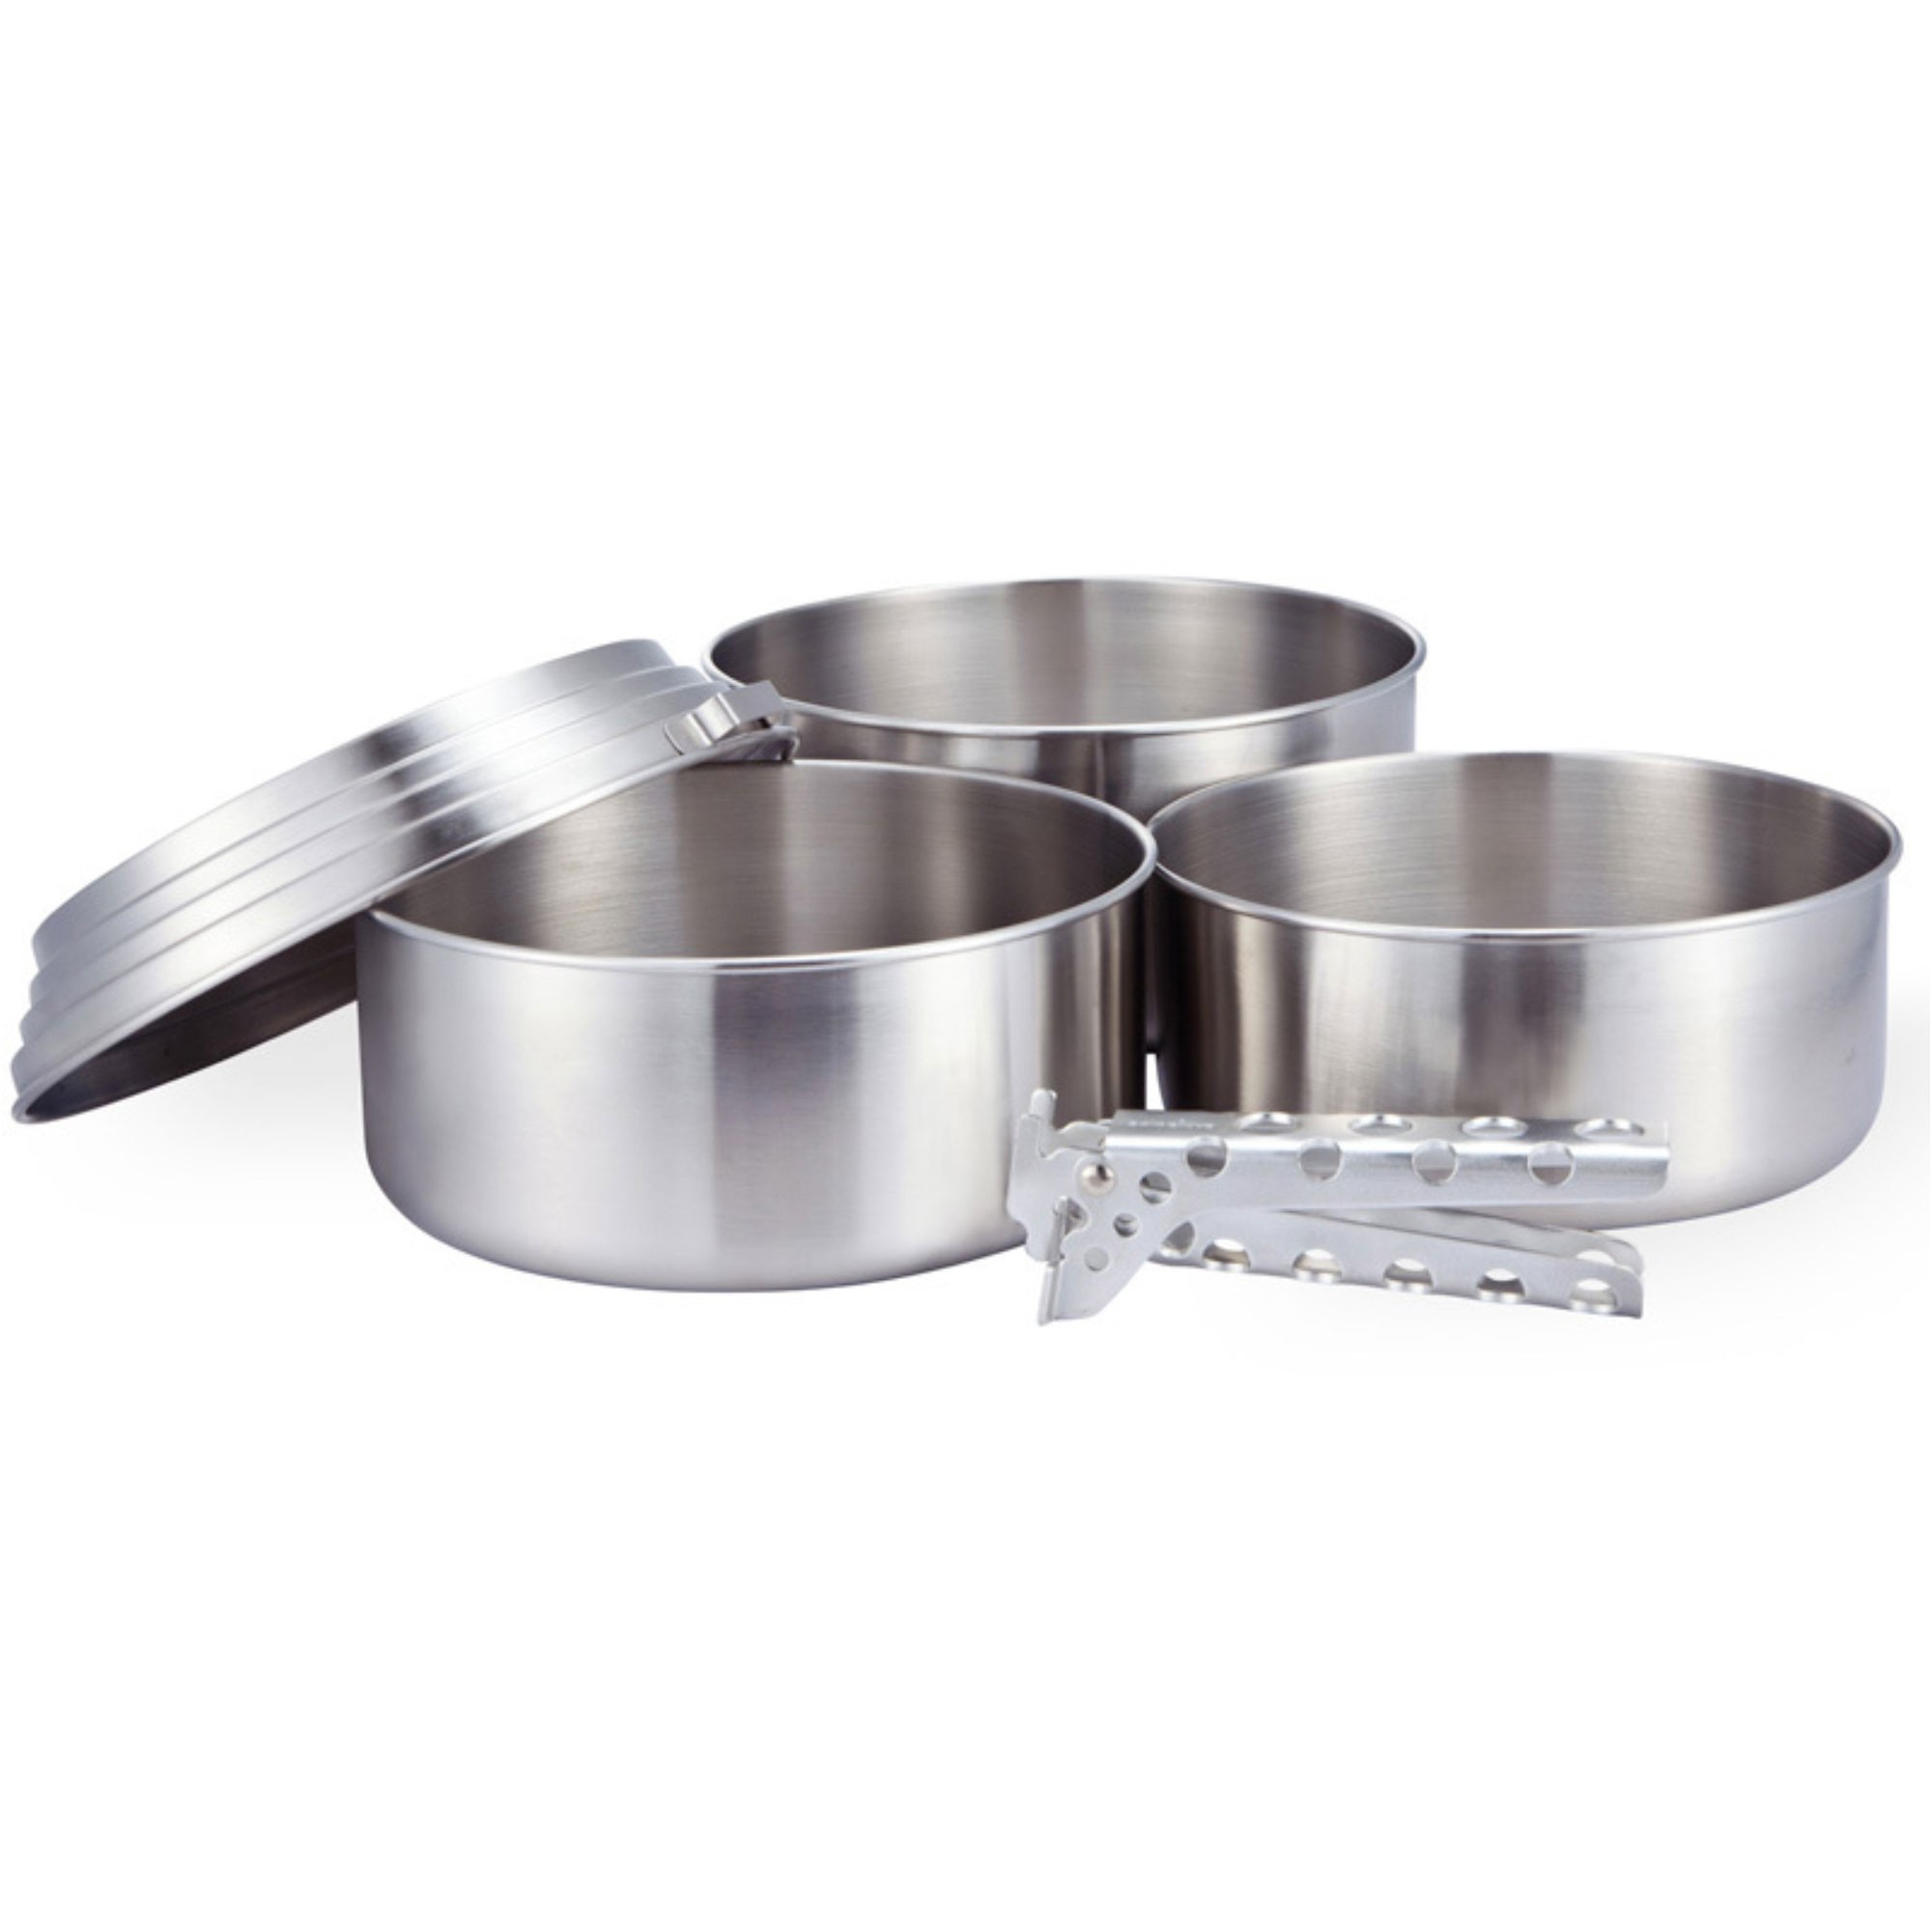 Solo Stove Three Pot Set Stainless Steel